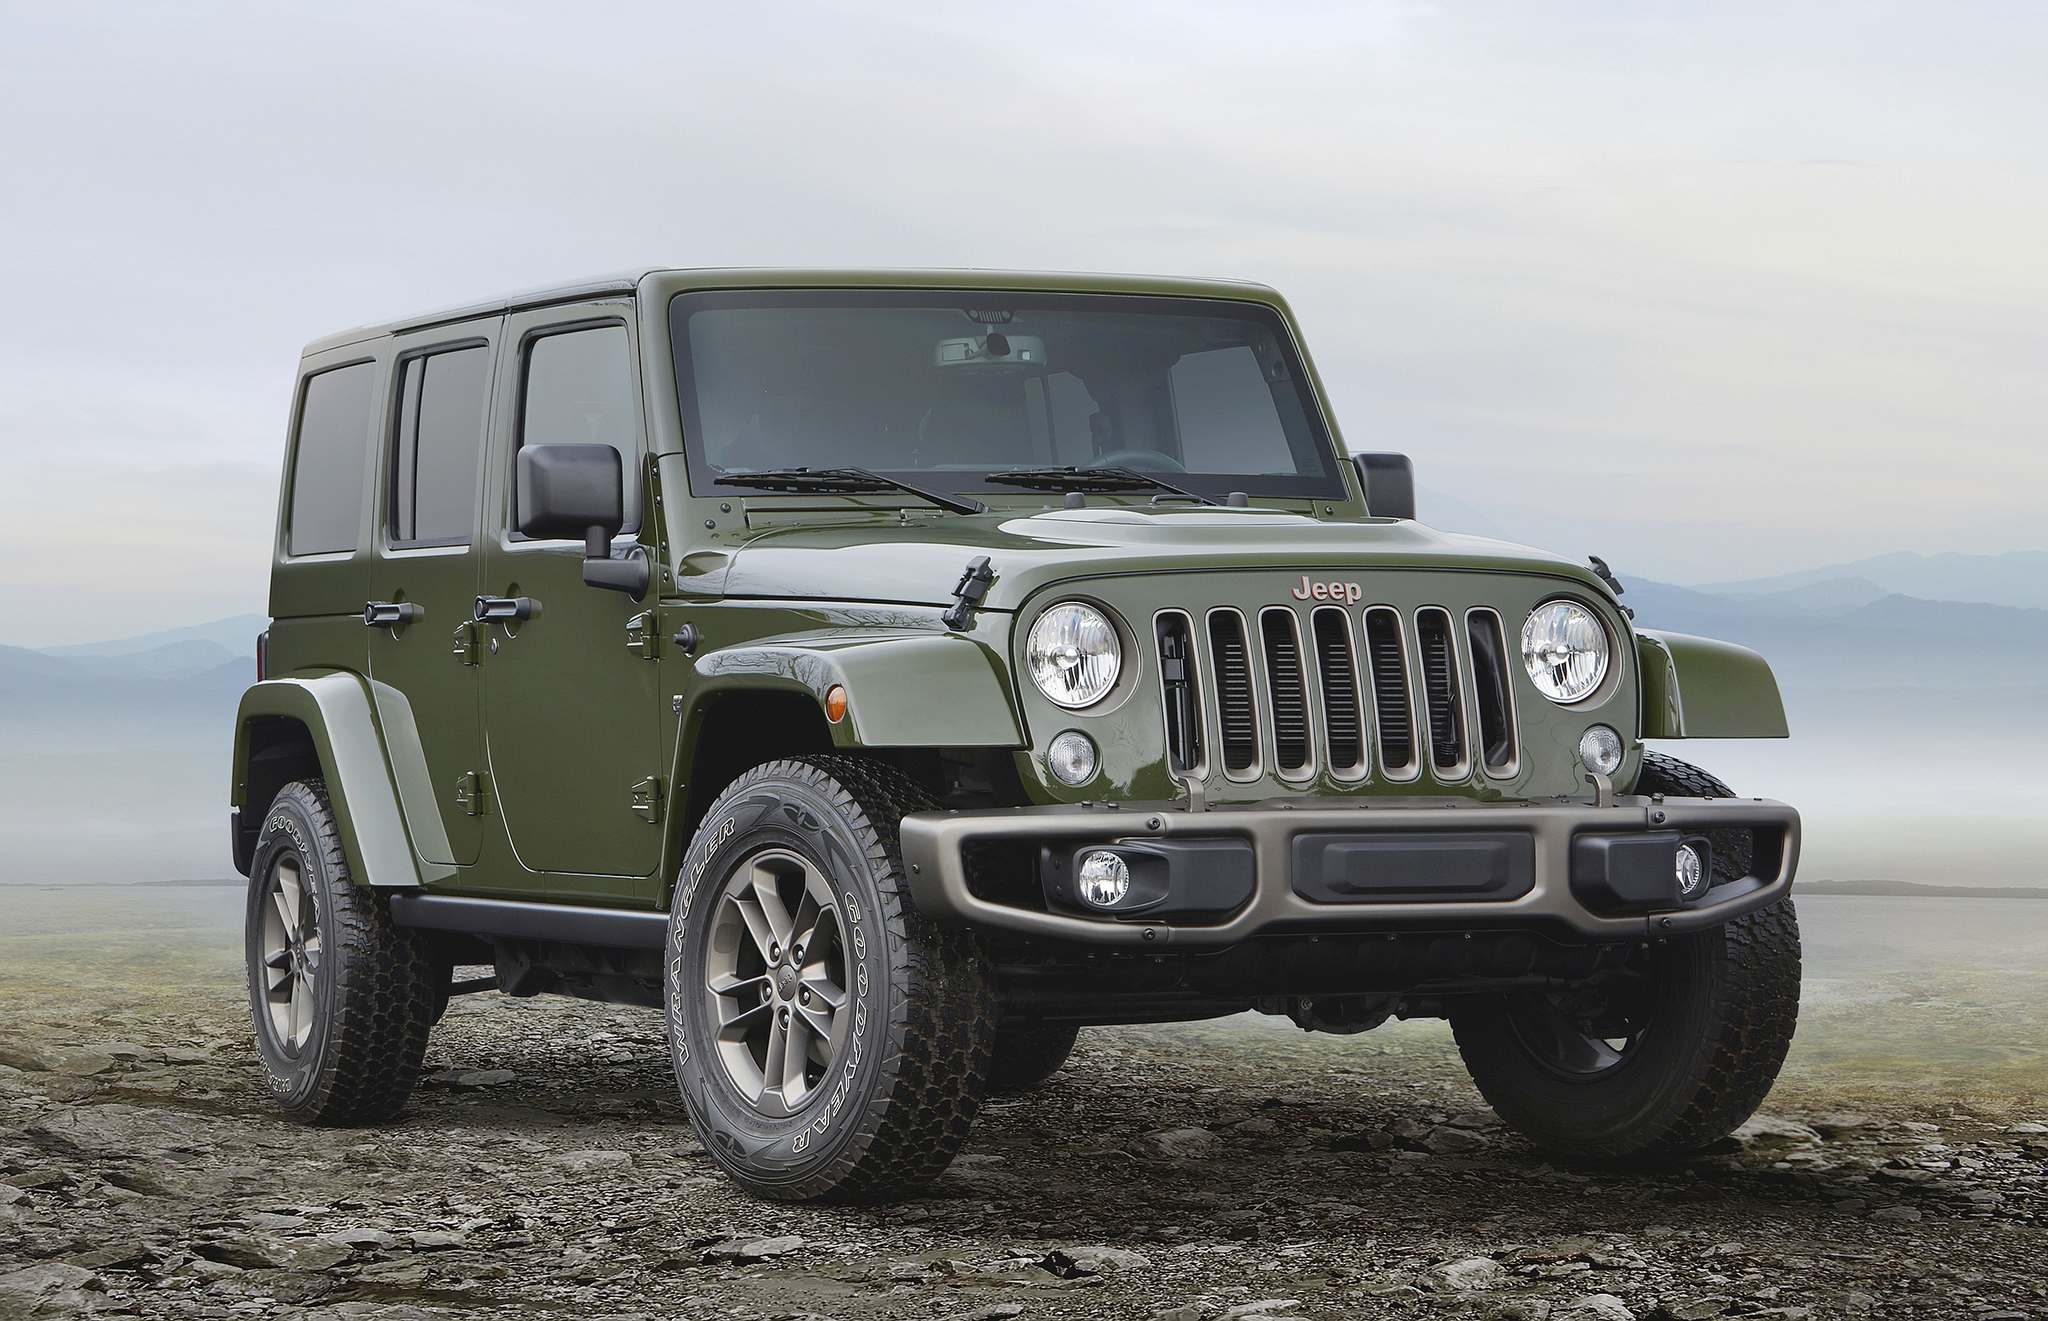 FIAT CHRYSLERAlways an off-road favourite, the Jeep Wrangler may soon be getting a more powerful engine.